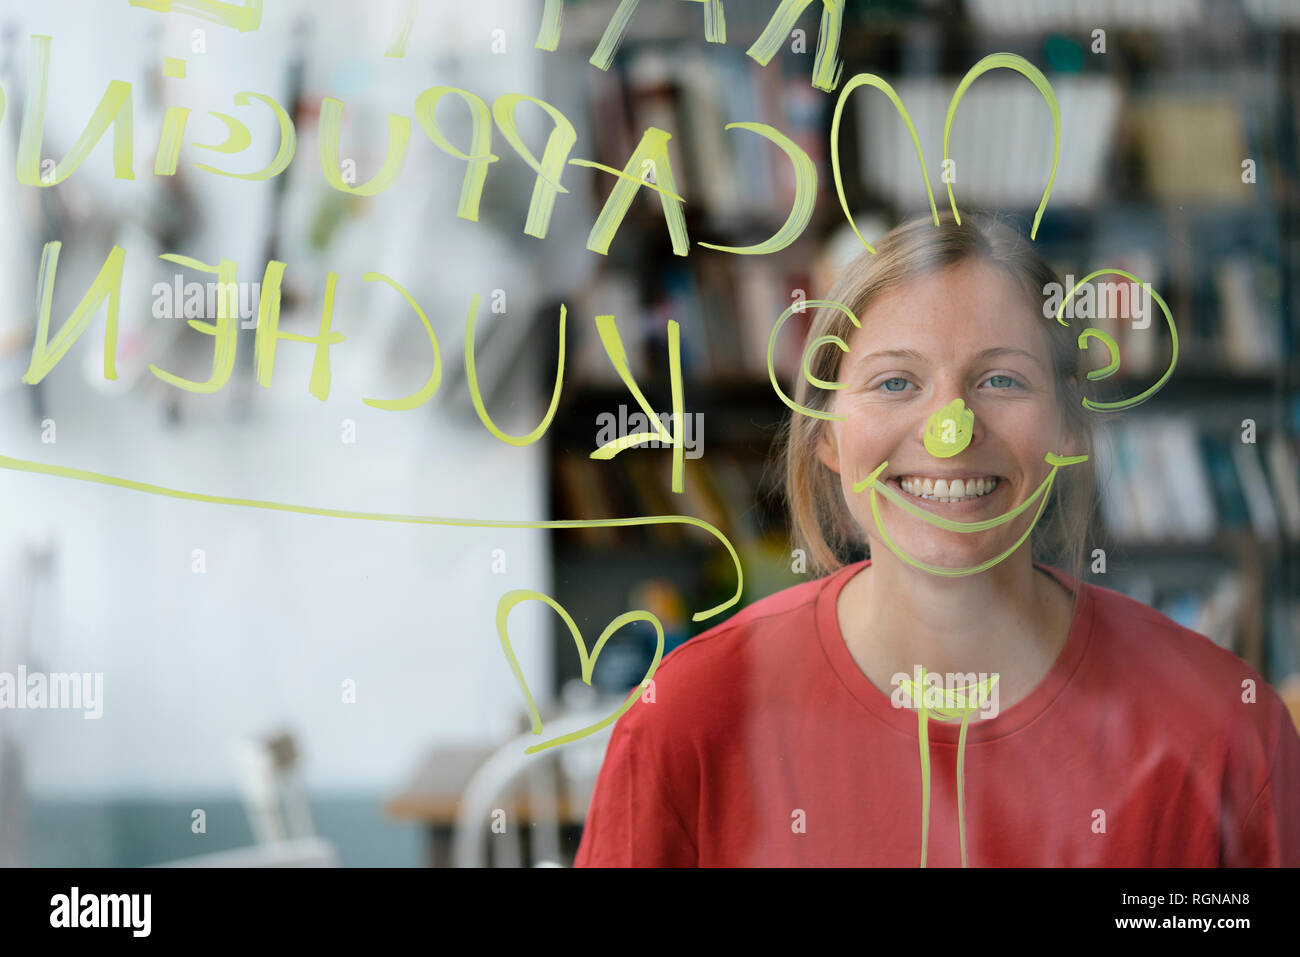 Portrait of happy young woman behind windowpane in a cafe - Stock Image